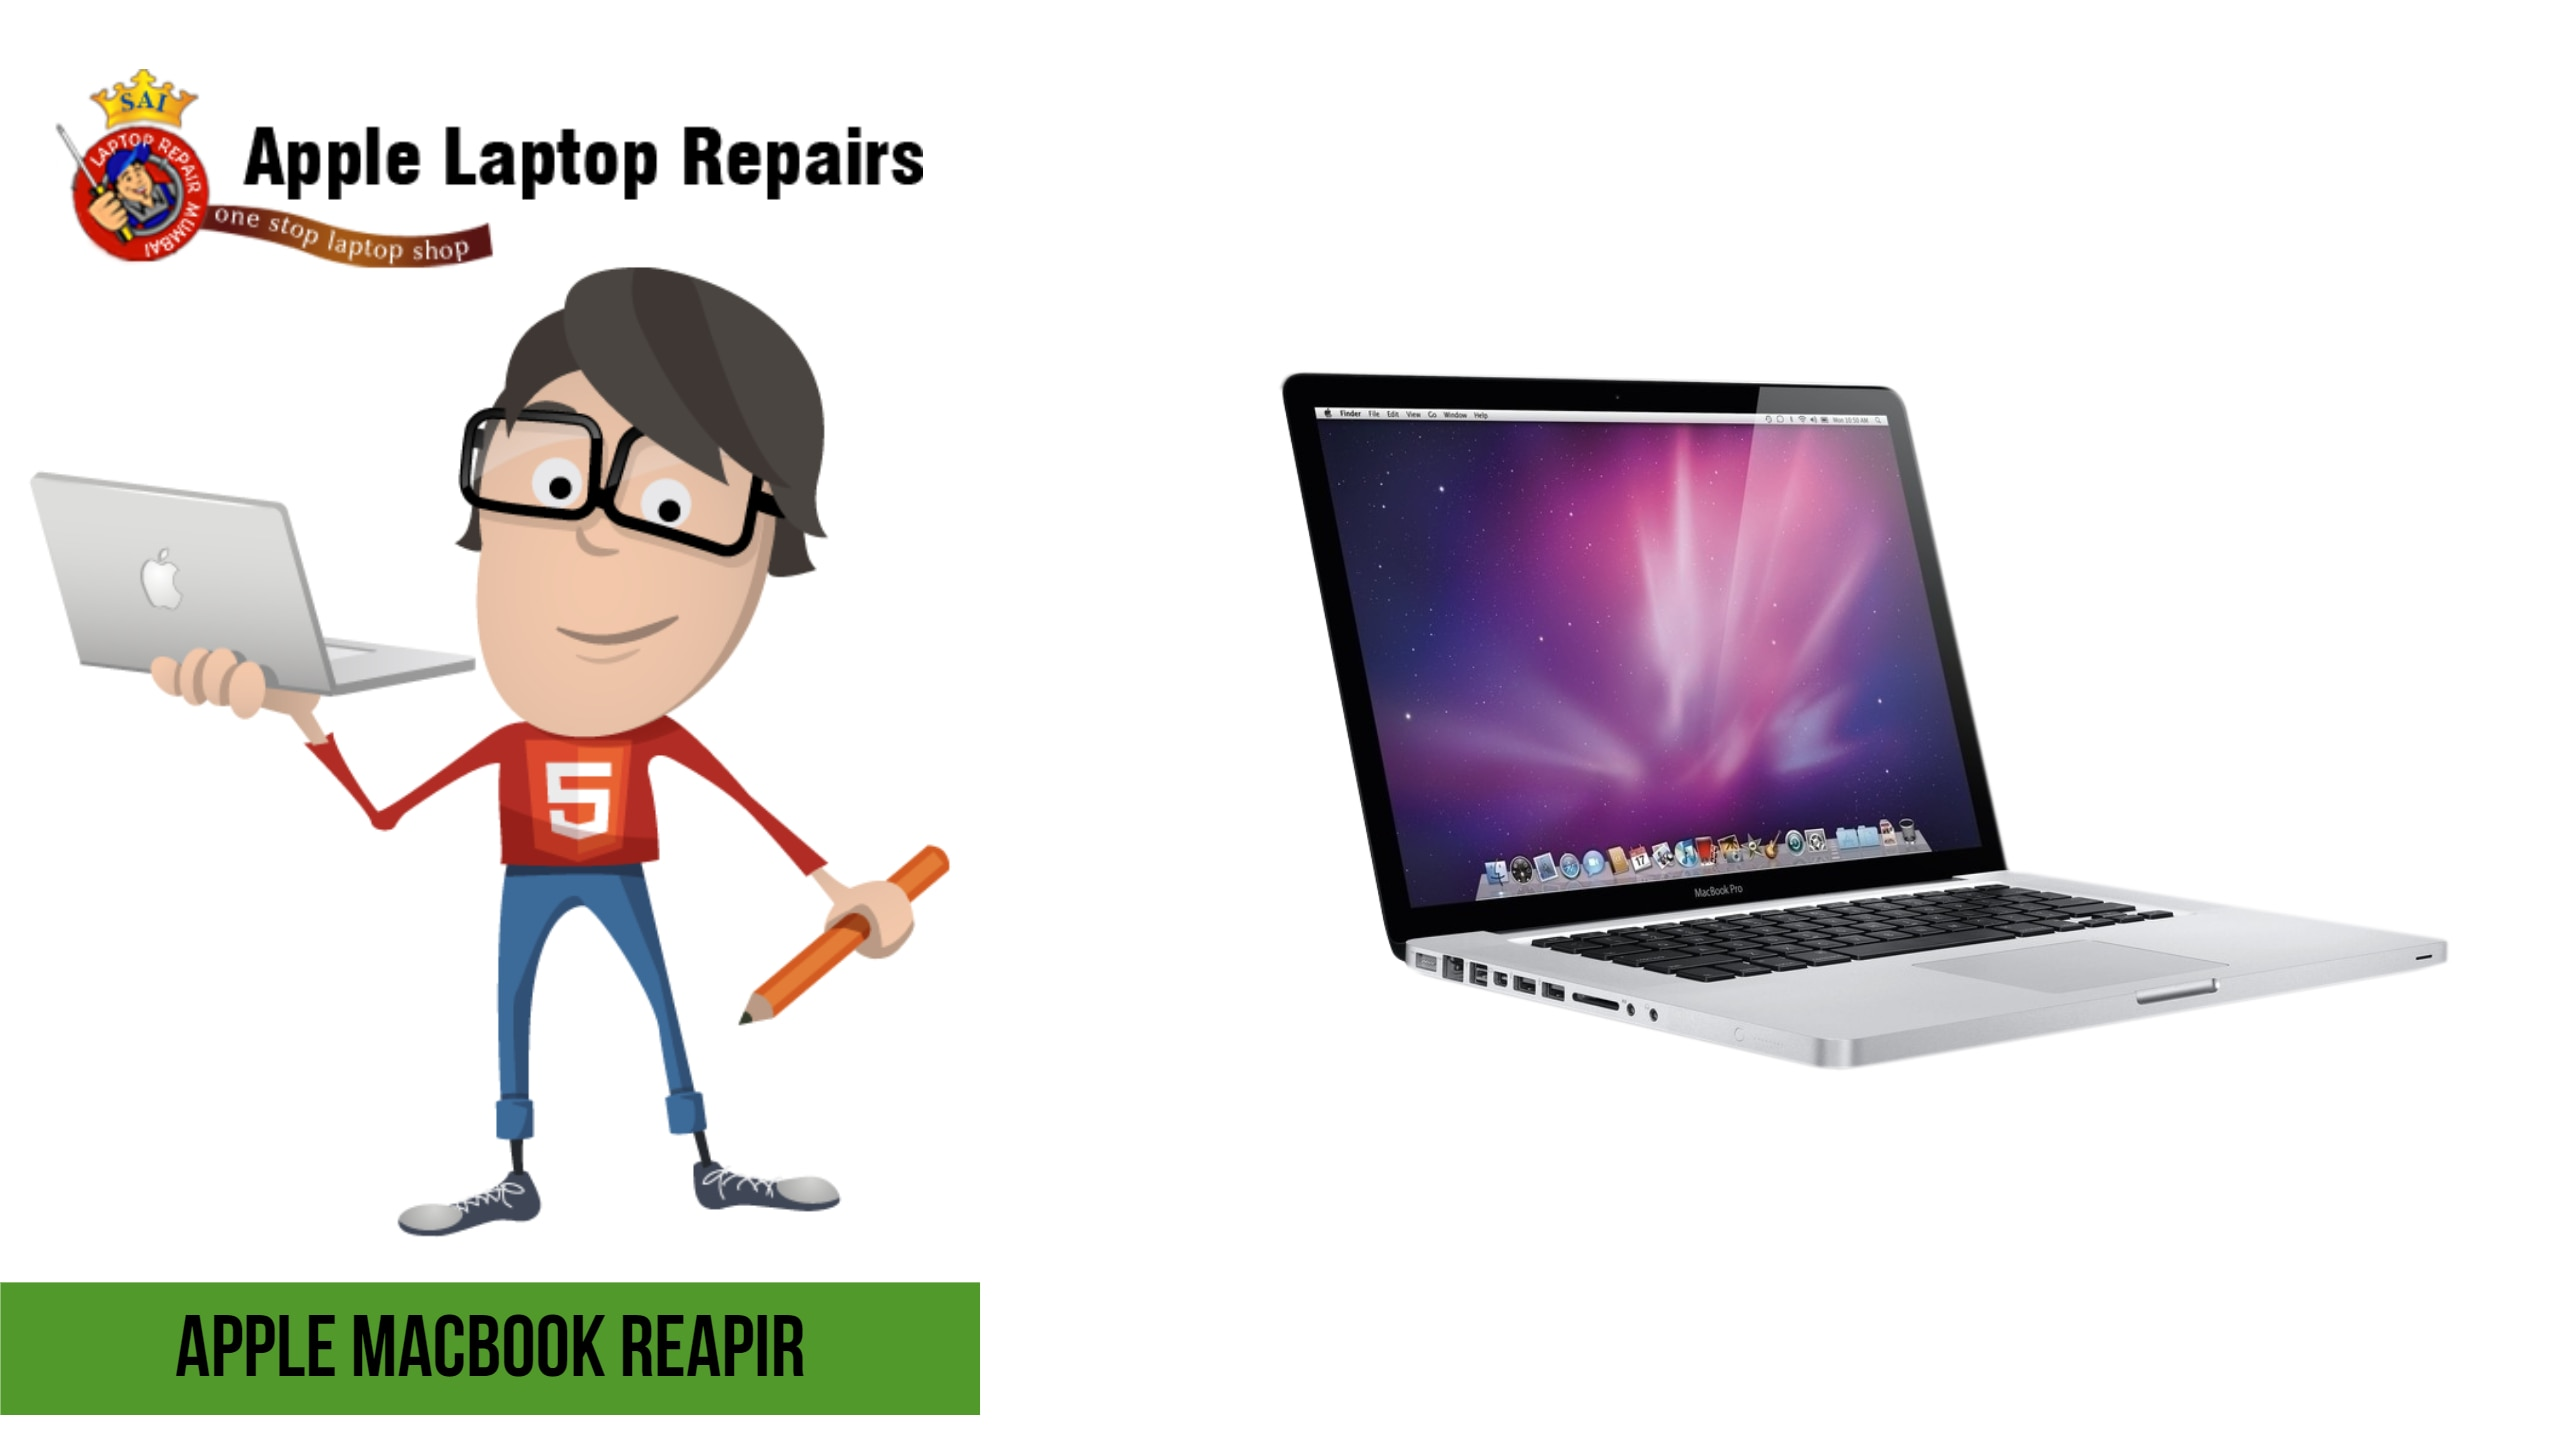 Updates Apple Services Mumbai Call 08048053537 In Mumbai About Us Apple Repairs Apple Repairs Provides Fast And Flawless Apple Laptop Repair Services At Any Time Of The Day When You